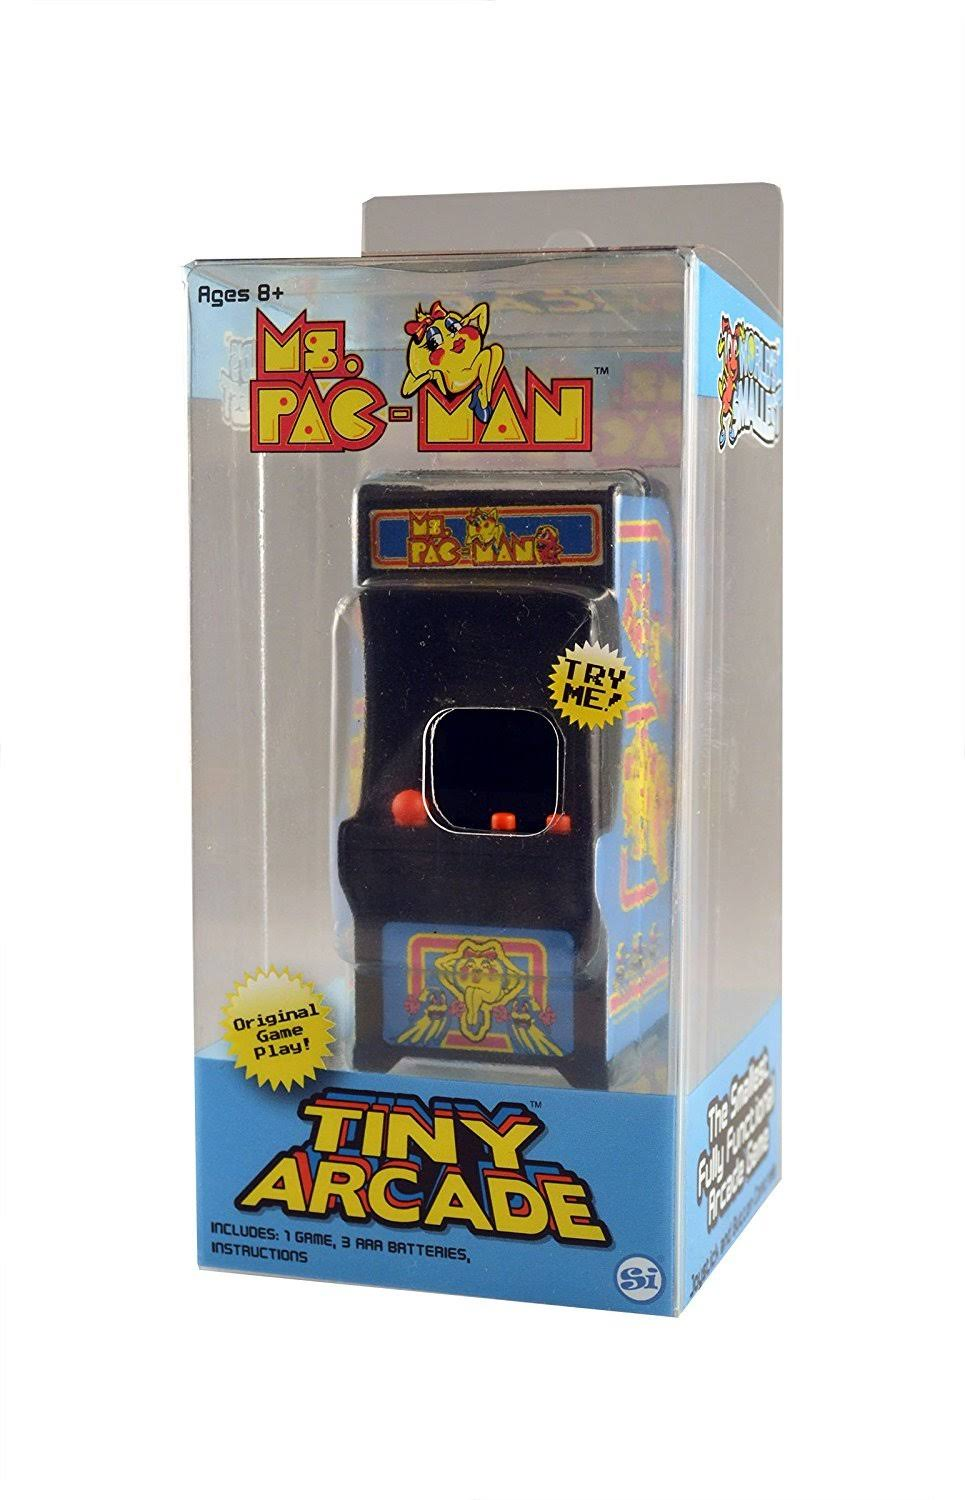 Tiny Arcade 375 Ms. Pac-Man Miniature Arcade Game